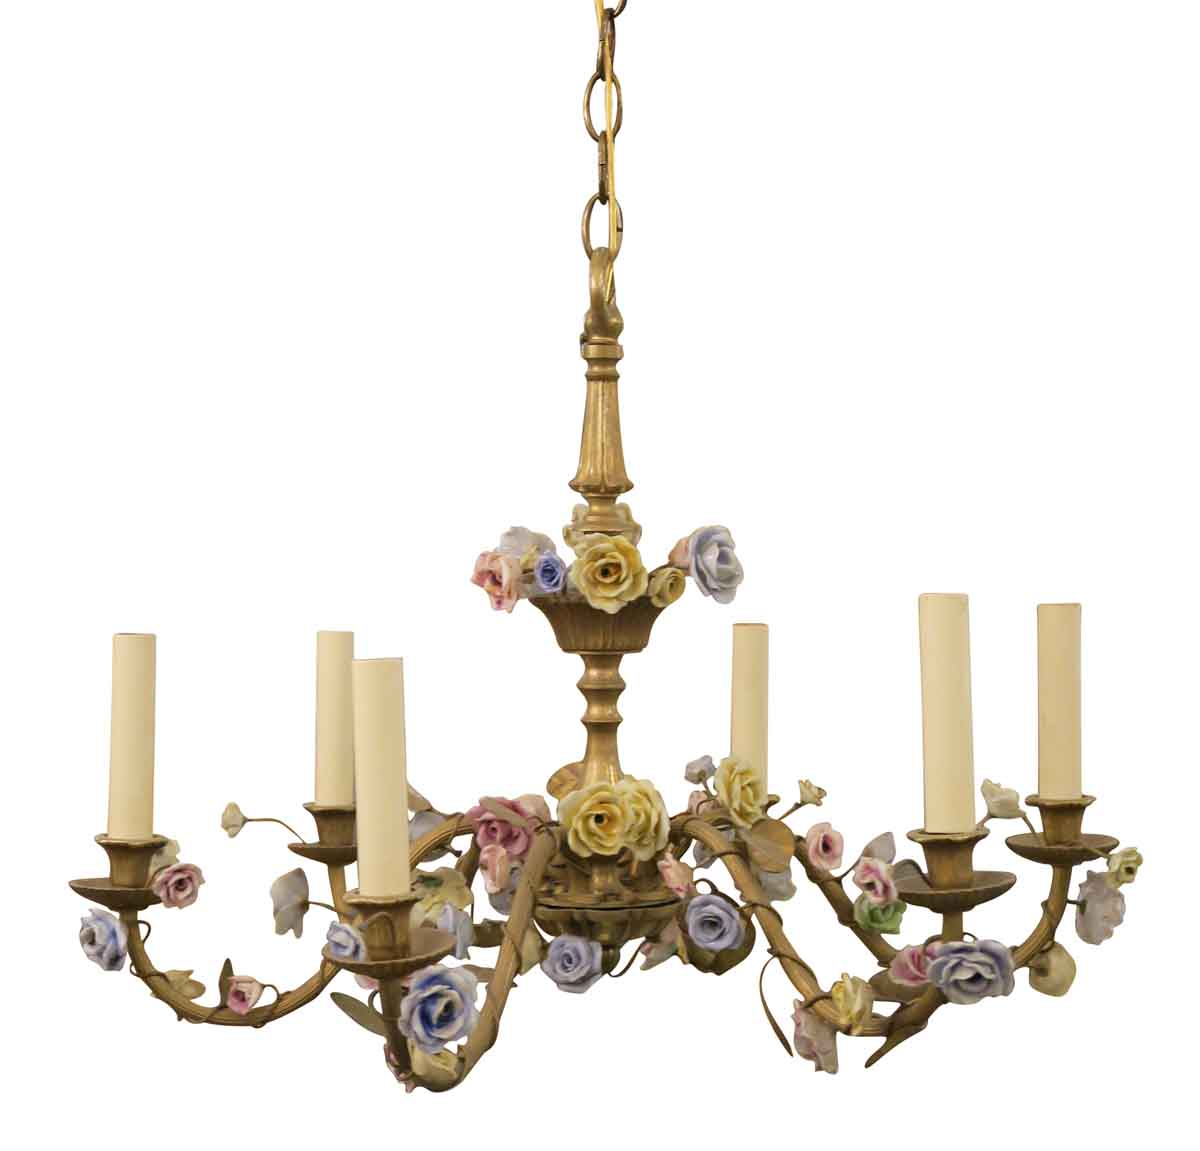 1920s french louis xvi six arm floral chandelier with porcelain 1920s french louis xvi six arm floral chandelier with porcelain flowers arubaitofo Gallery